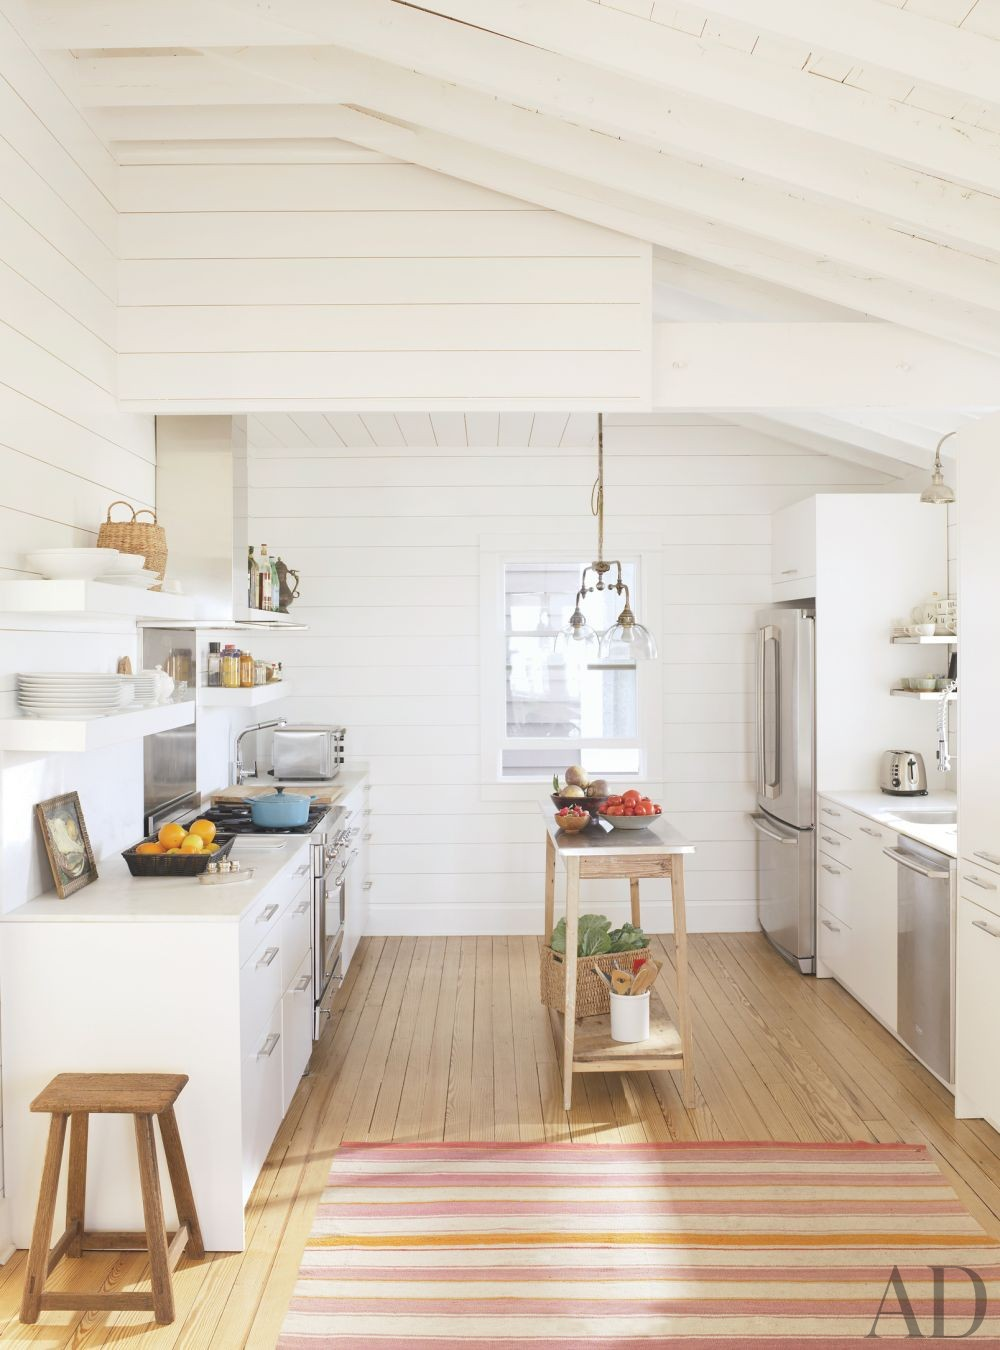 Beach Kitchen by Amelia T. Handegan and Stumphouse Architecture + Design and Glenn Keyes Architects in Folly Beach, South Carolina